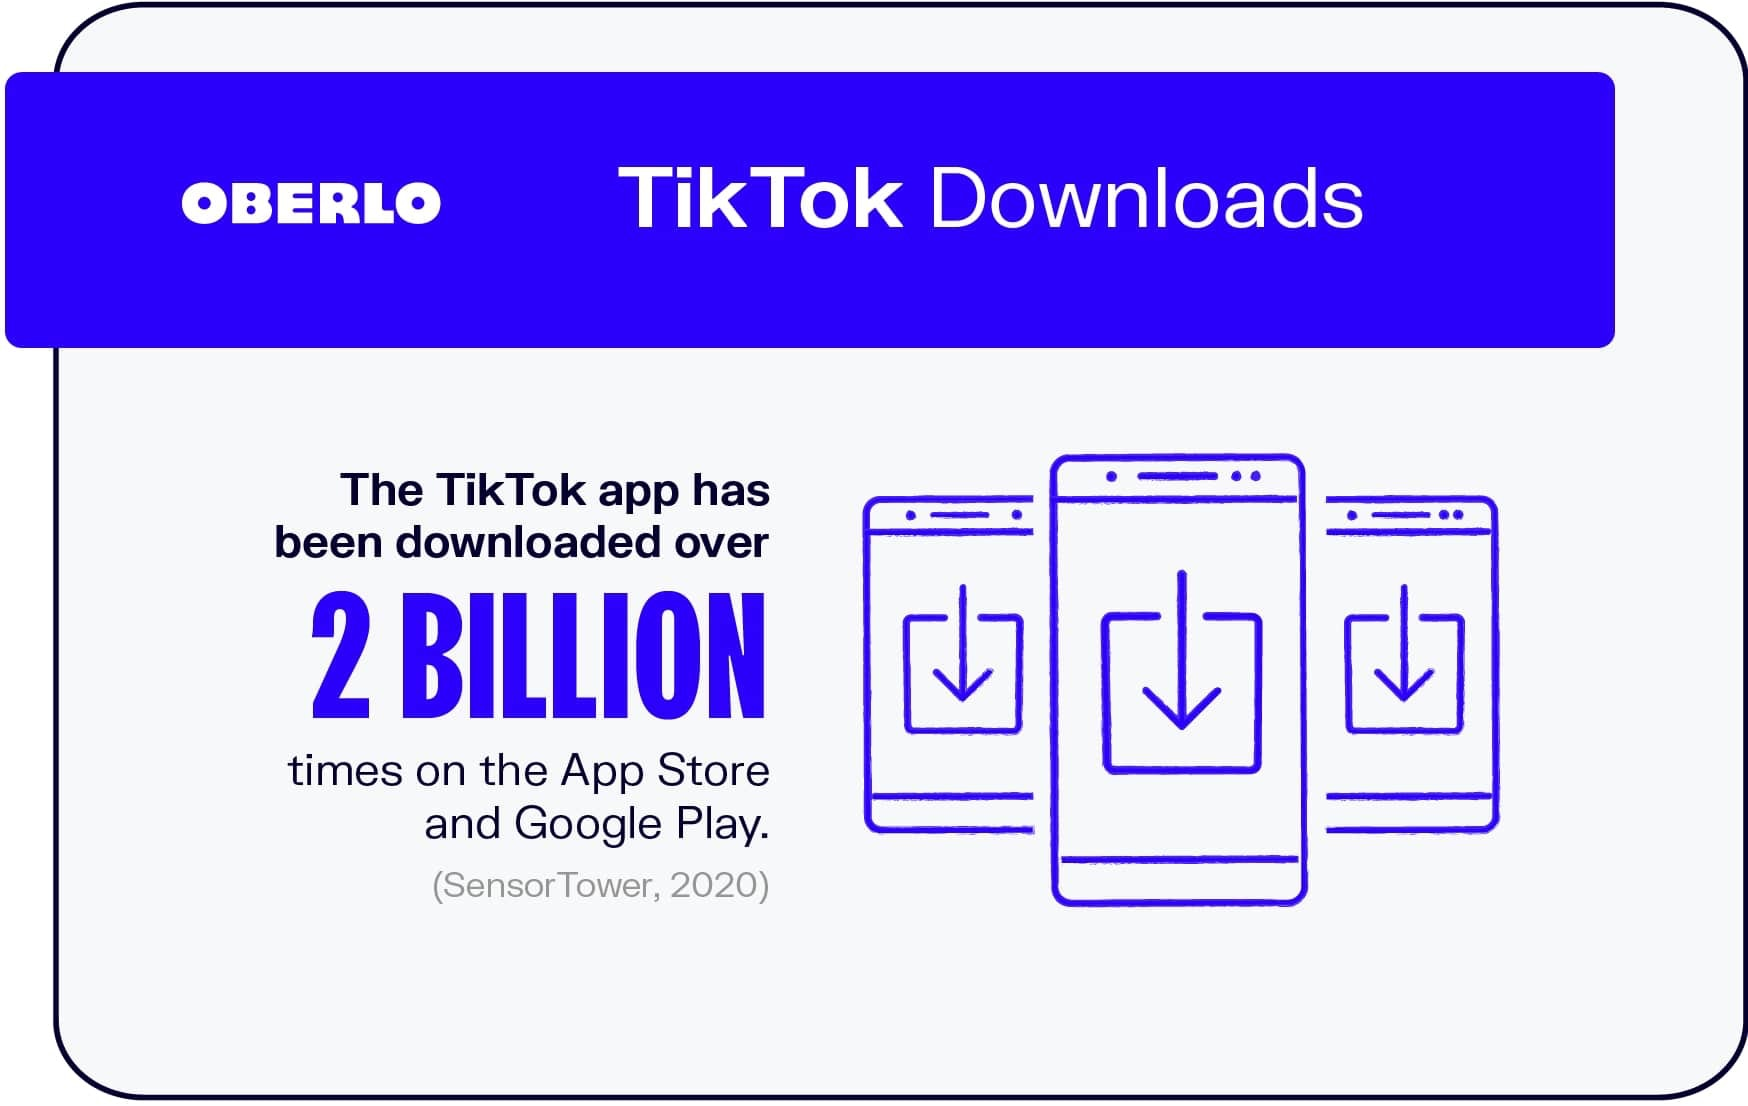 How Many Downloads Does TikTok Have?